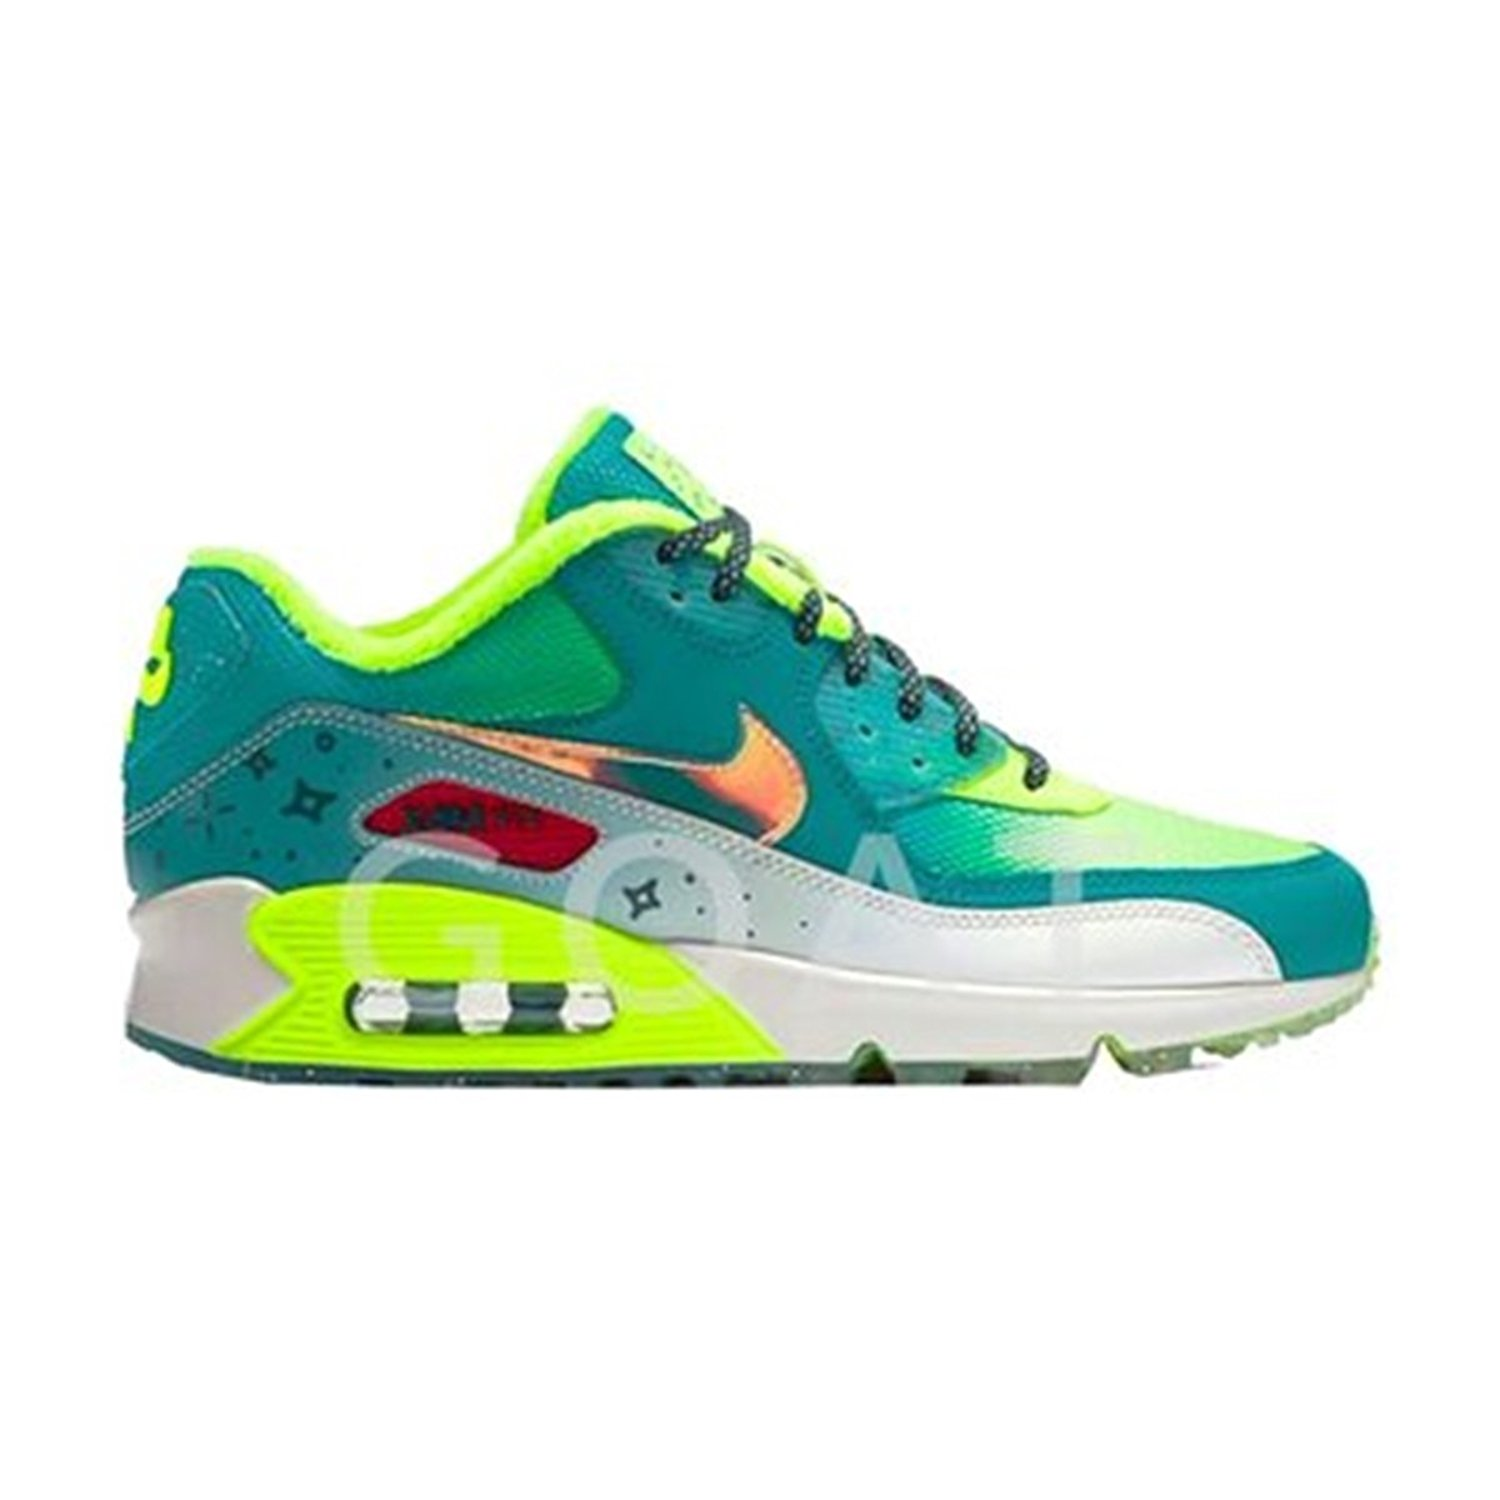 the best attitude 39059 684b3 Get Quotations · Nike Air Max 90 Premium Emory's Doernbecher 838768-374  Girls ...